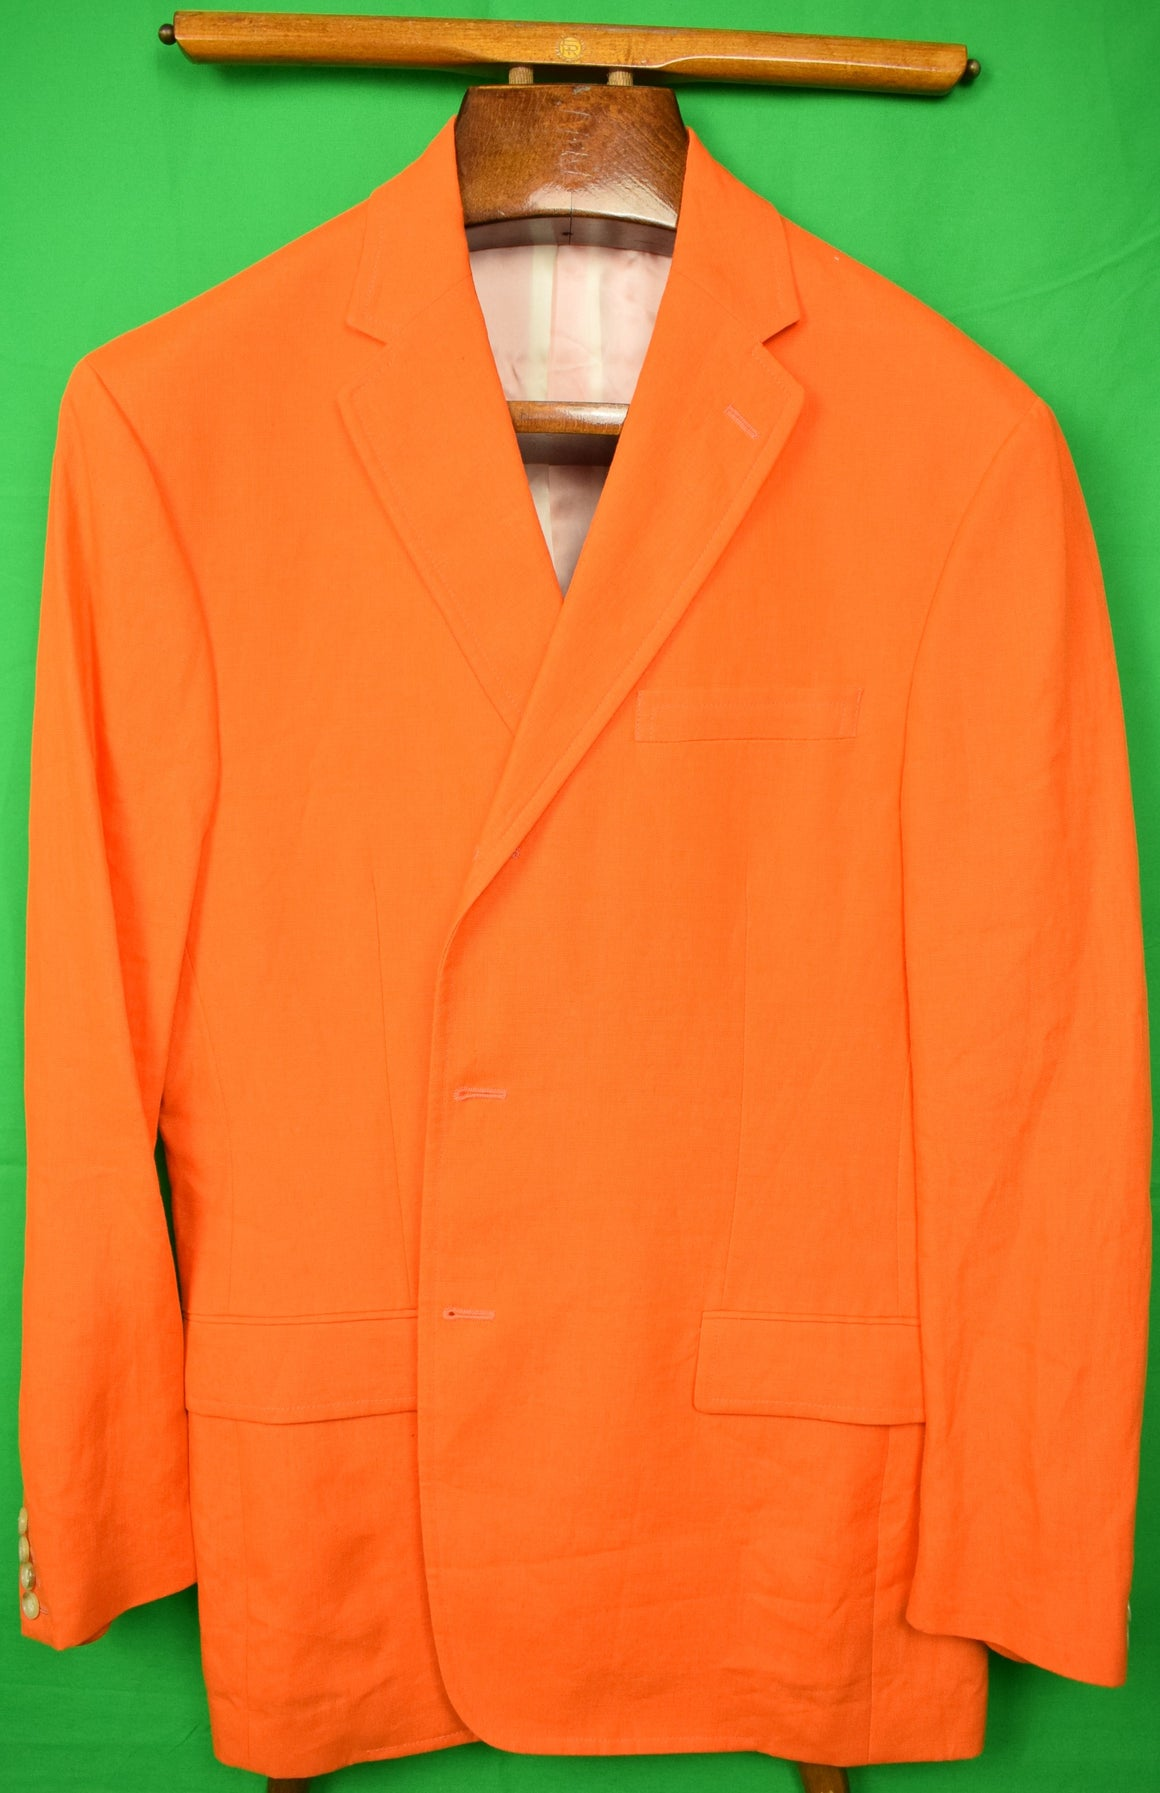 Polo Ralph Lauren Orange Italian Linen Blazer Sz L